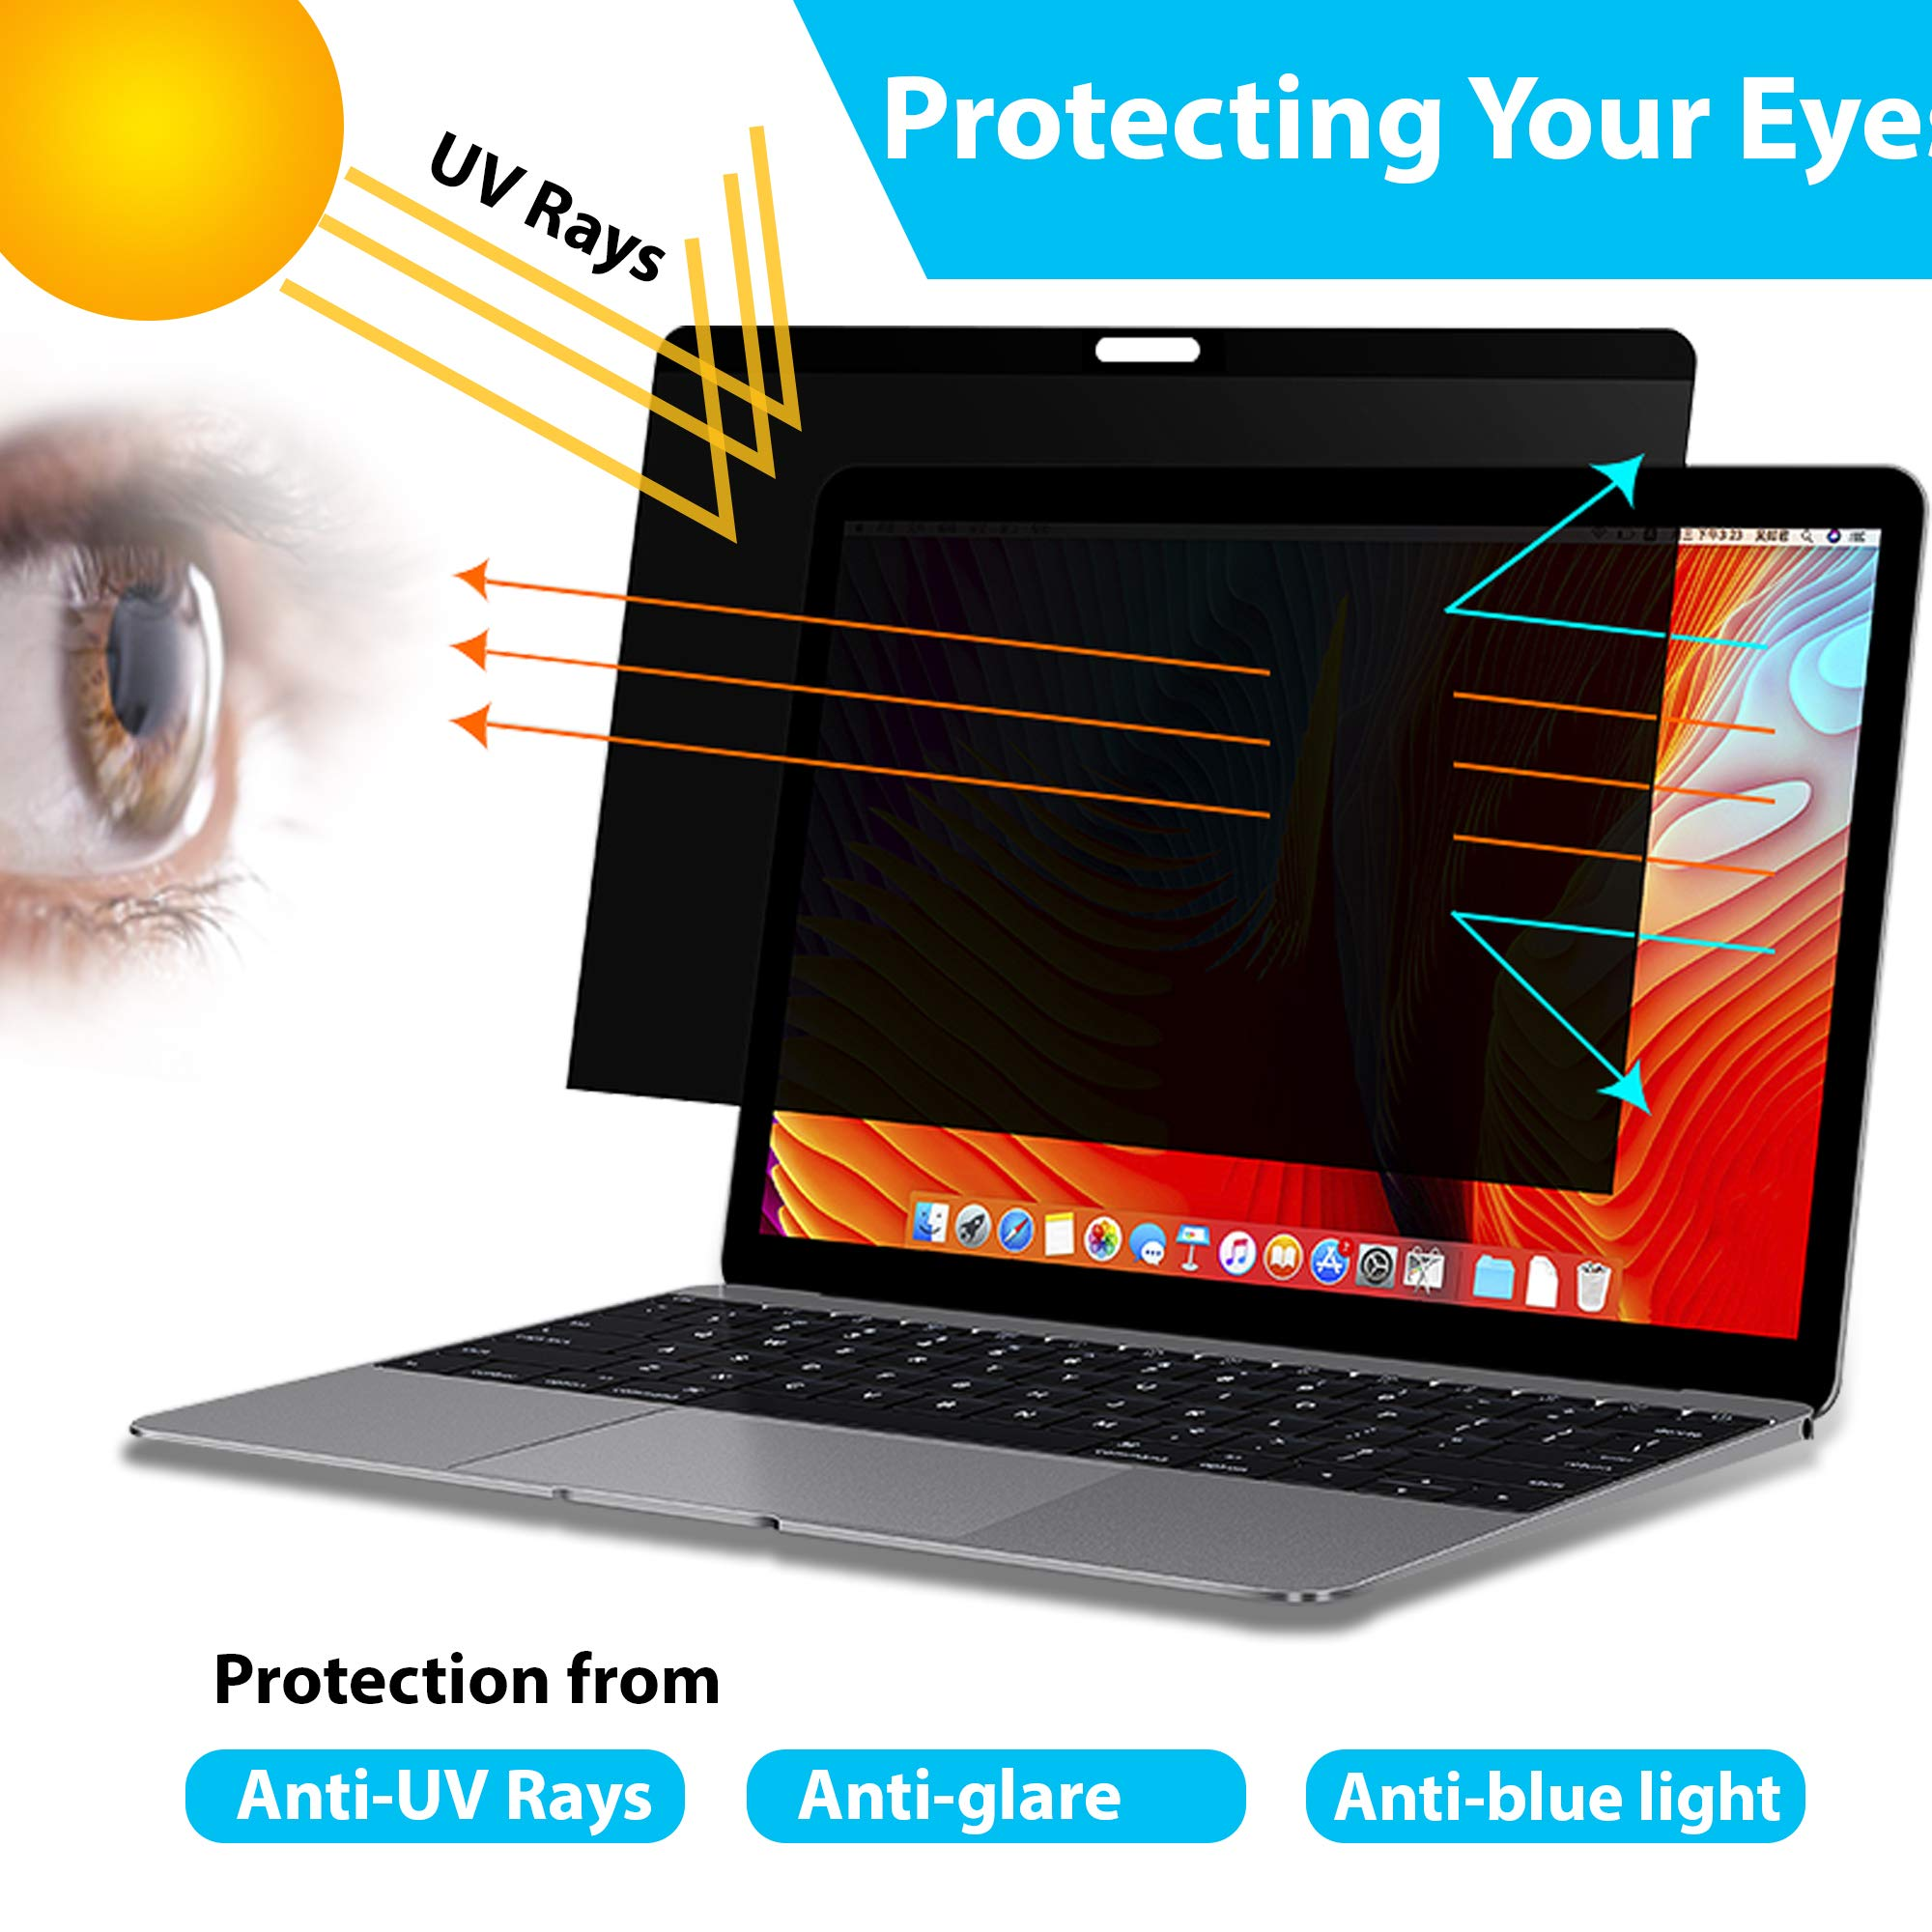 ADVTECH 2nd Gen Magnetic Privacy Screen Filter Compatible for Latest MacBook Pro 13'' Touch Bar (Late 2016) and MacAir (2018) No Stickers Required [Anti-UV Rays] Anti-Glare [Screen Protection] No Leak by ADVTECH (Image #4)